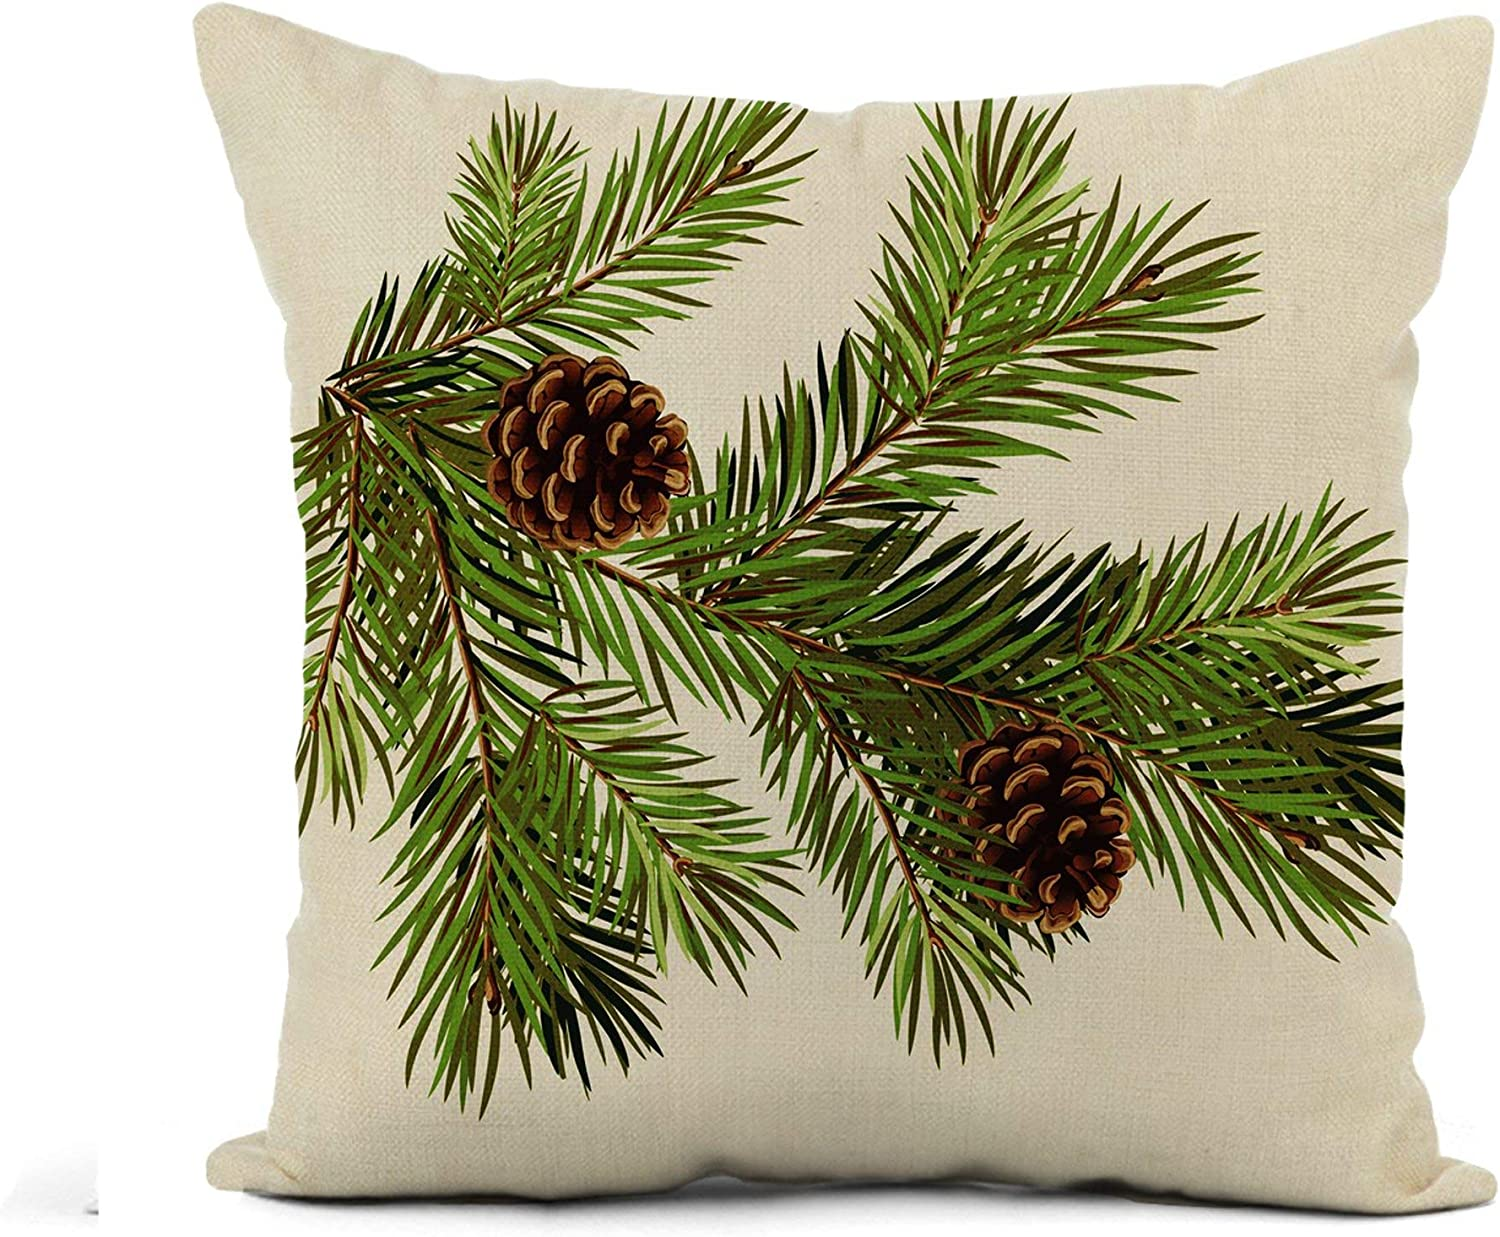 Awowee Flax Throw Pillow Cover Green Aged Branch of Christmas Tree Pine Cone Celebrate 18x18 Inches Pillowcase Home Decor Square Cotton Linen Pillow Case Cushion Cover